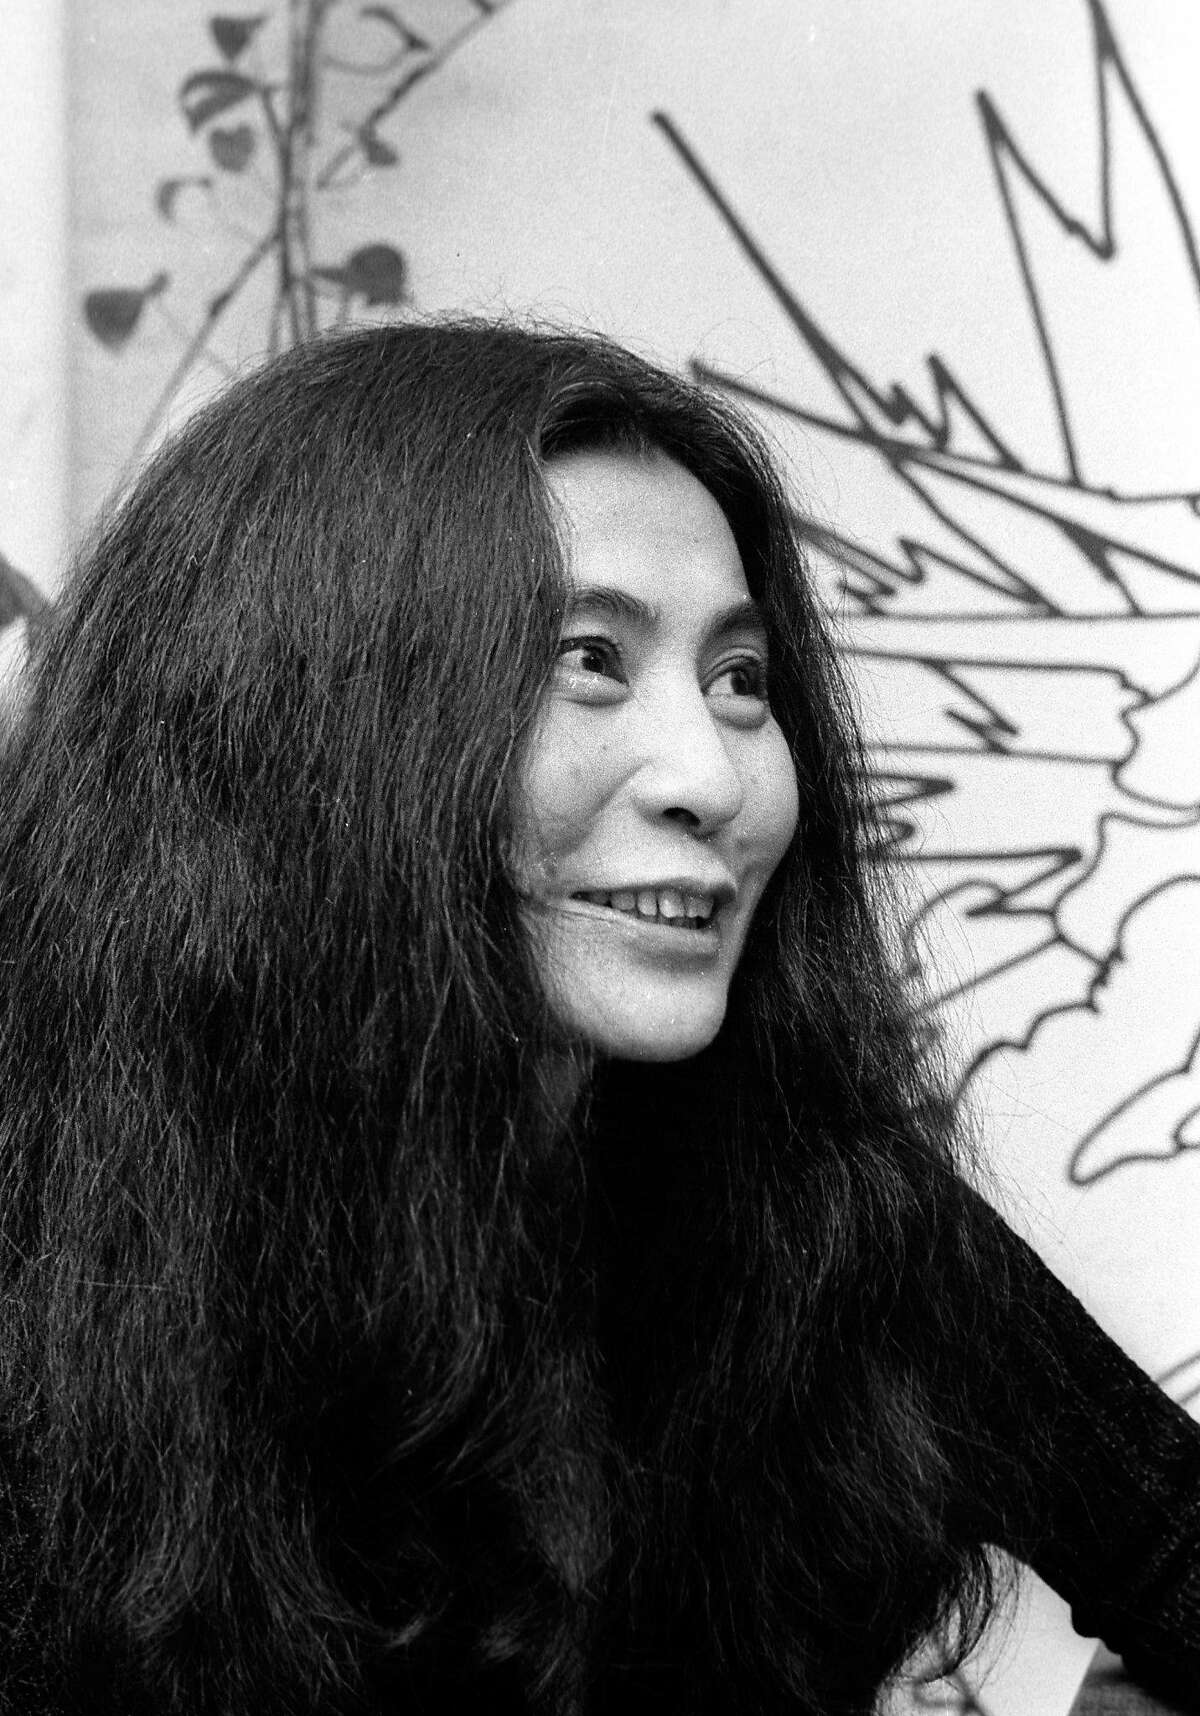 NEW YORK CITY - NOVEMBER 13: Musician Yoko Ono attends the opening of David Croland Exhibit on November 13, 1973 at Artworks Gallery in New York City. (Photo by Ron Galella/WireImage)